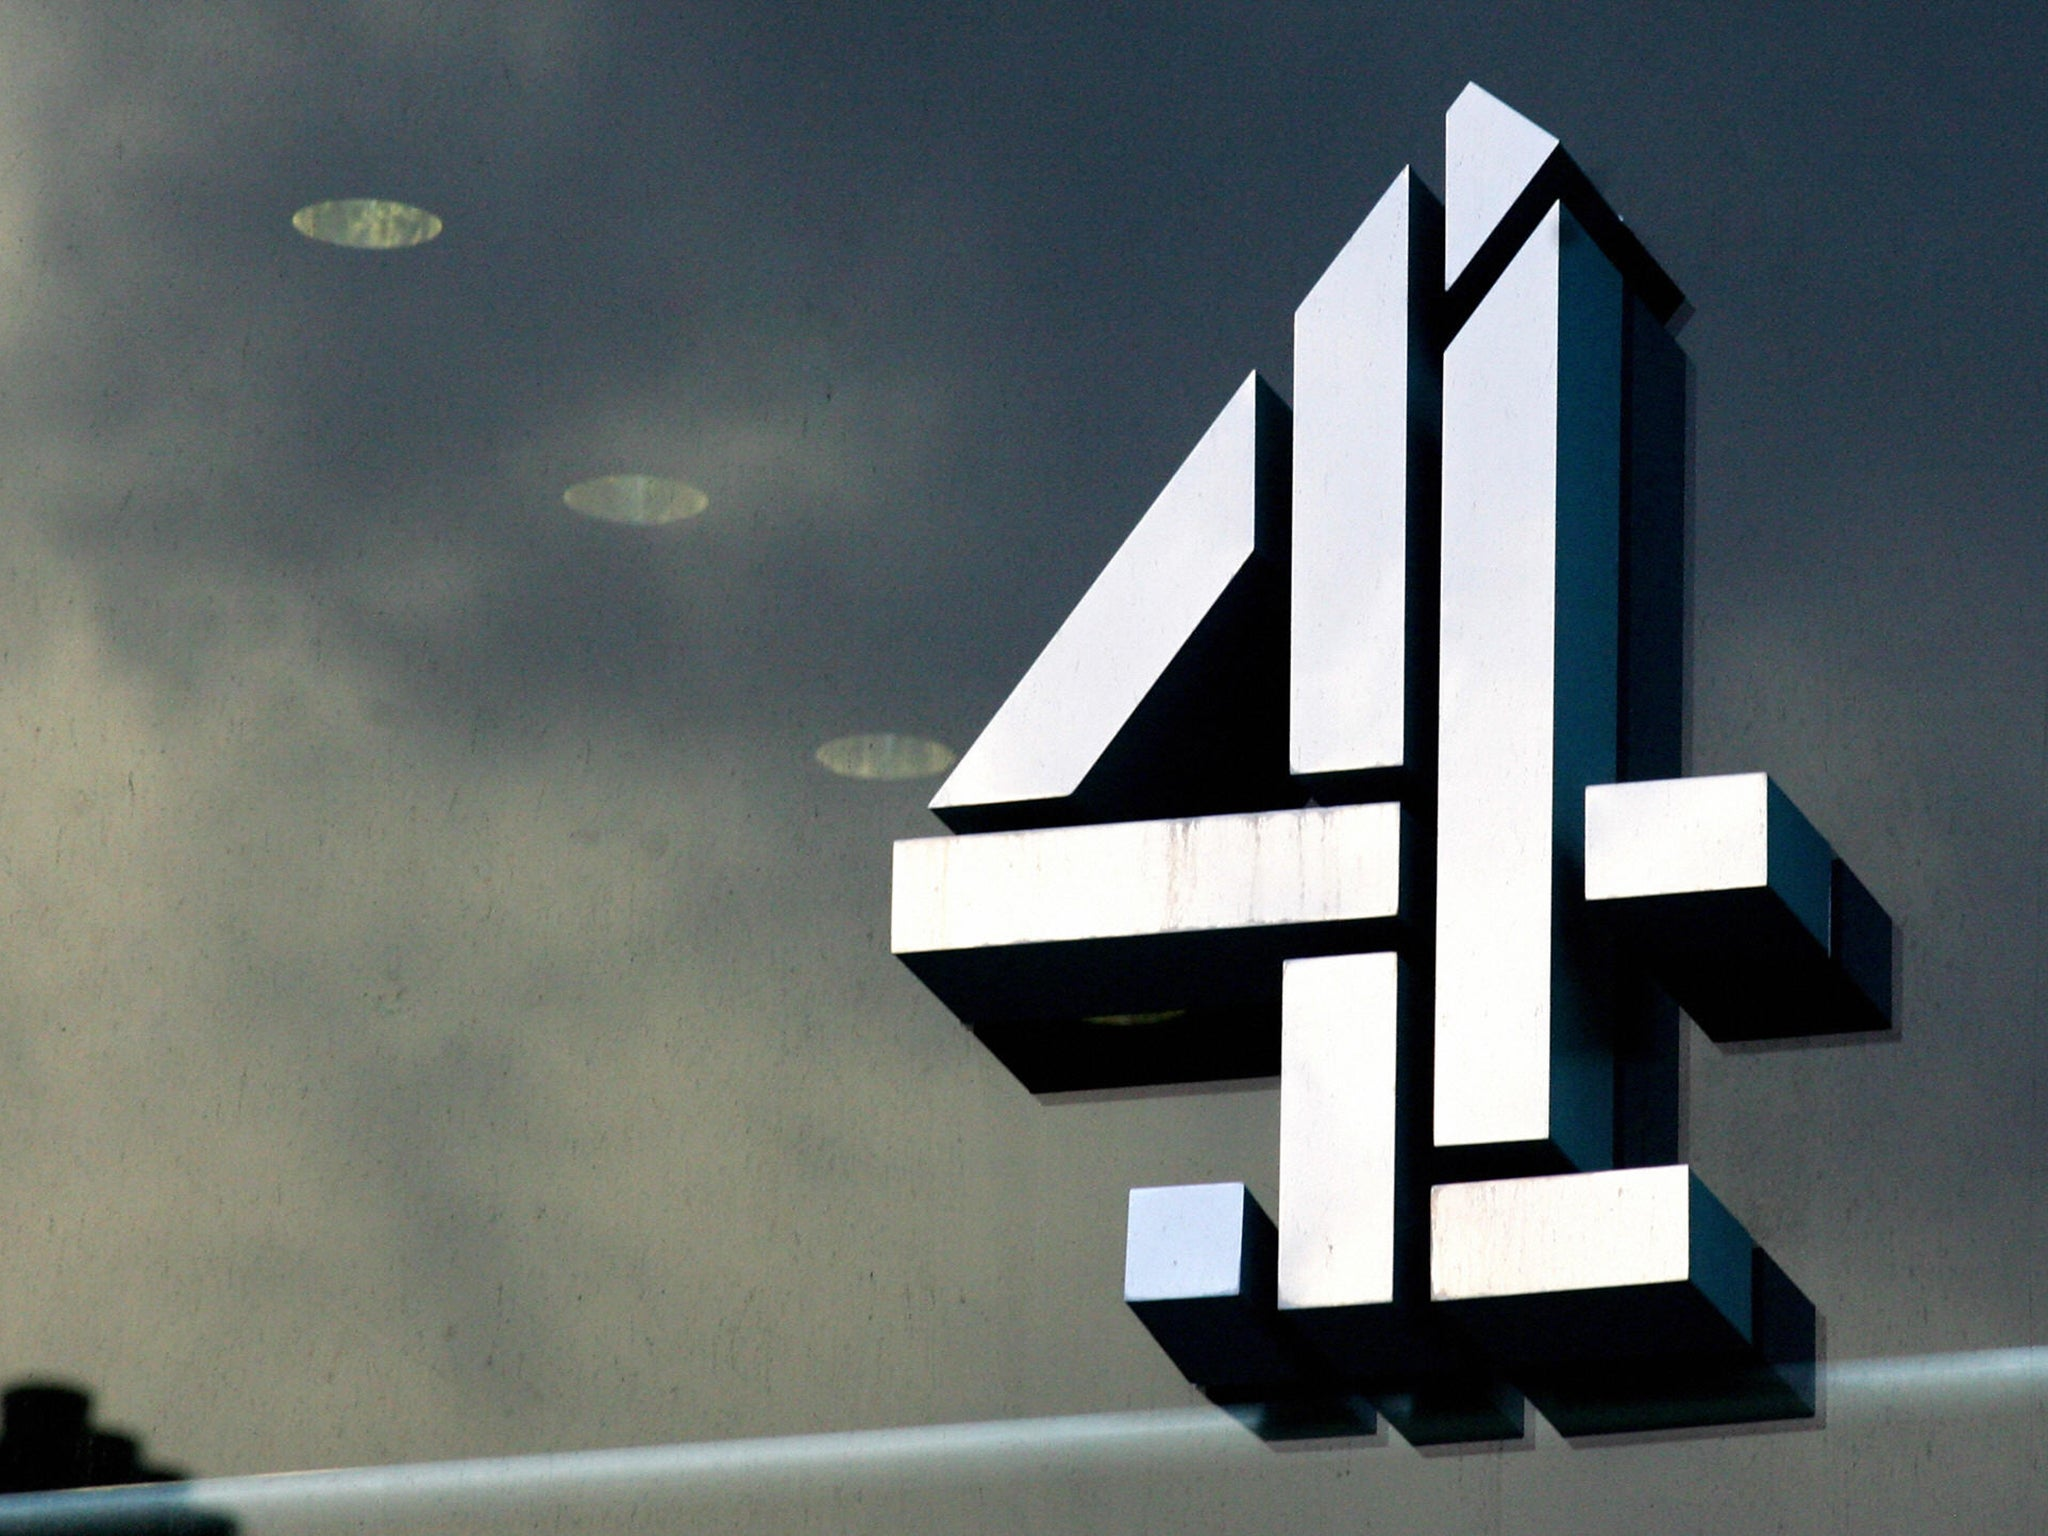 channel 4 chief executive david abraham to quit leaked statement